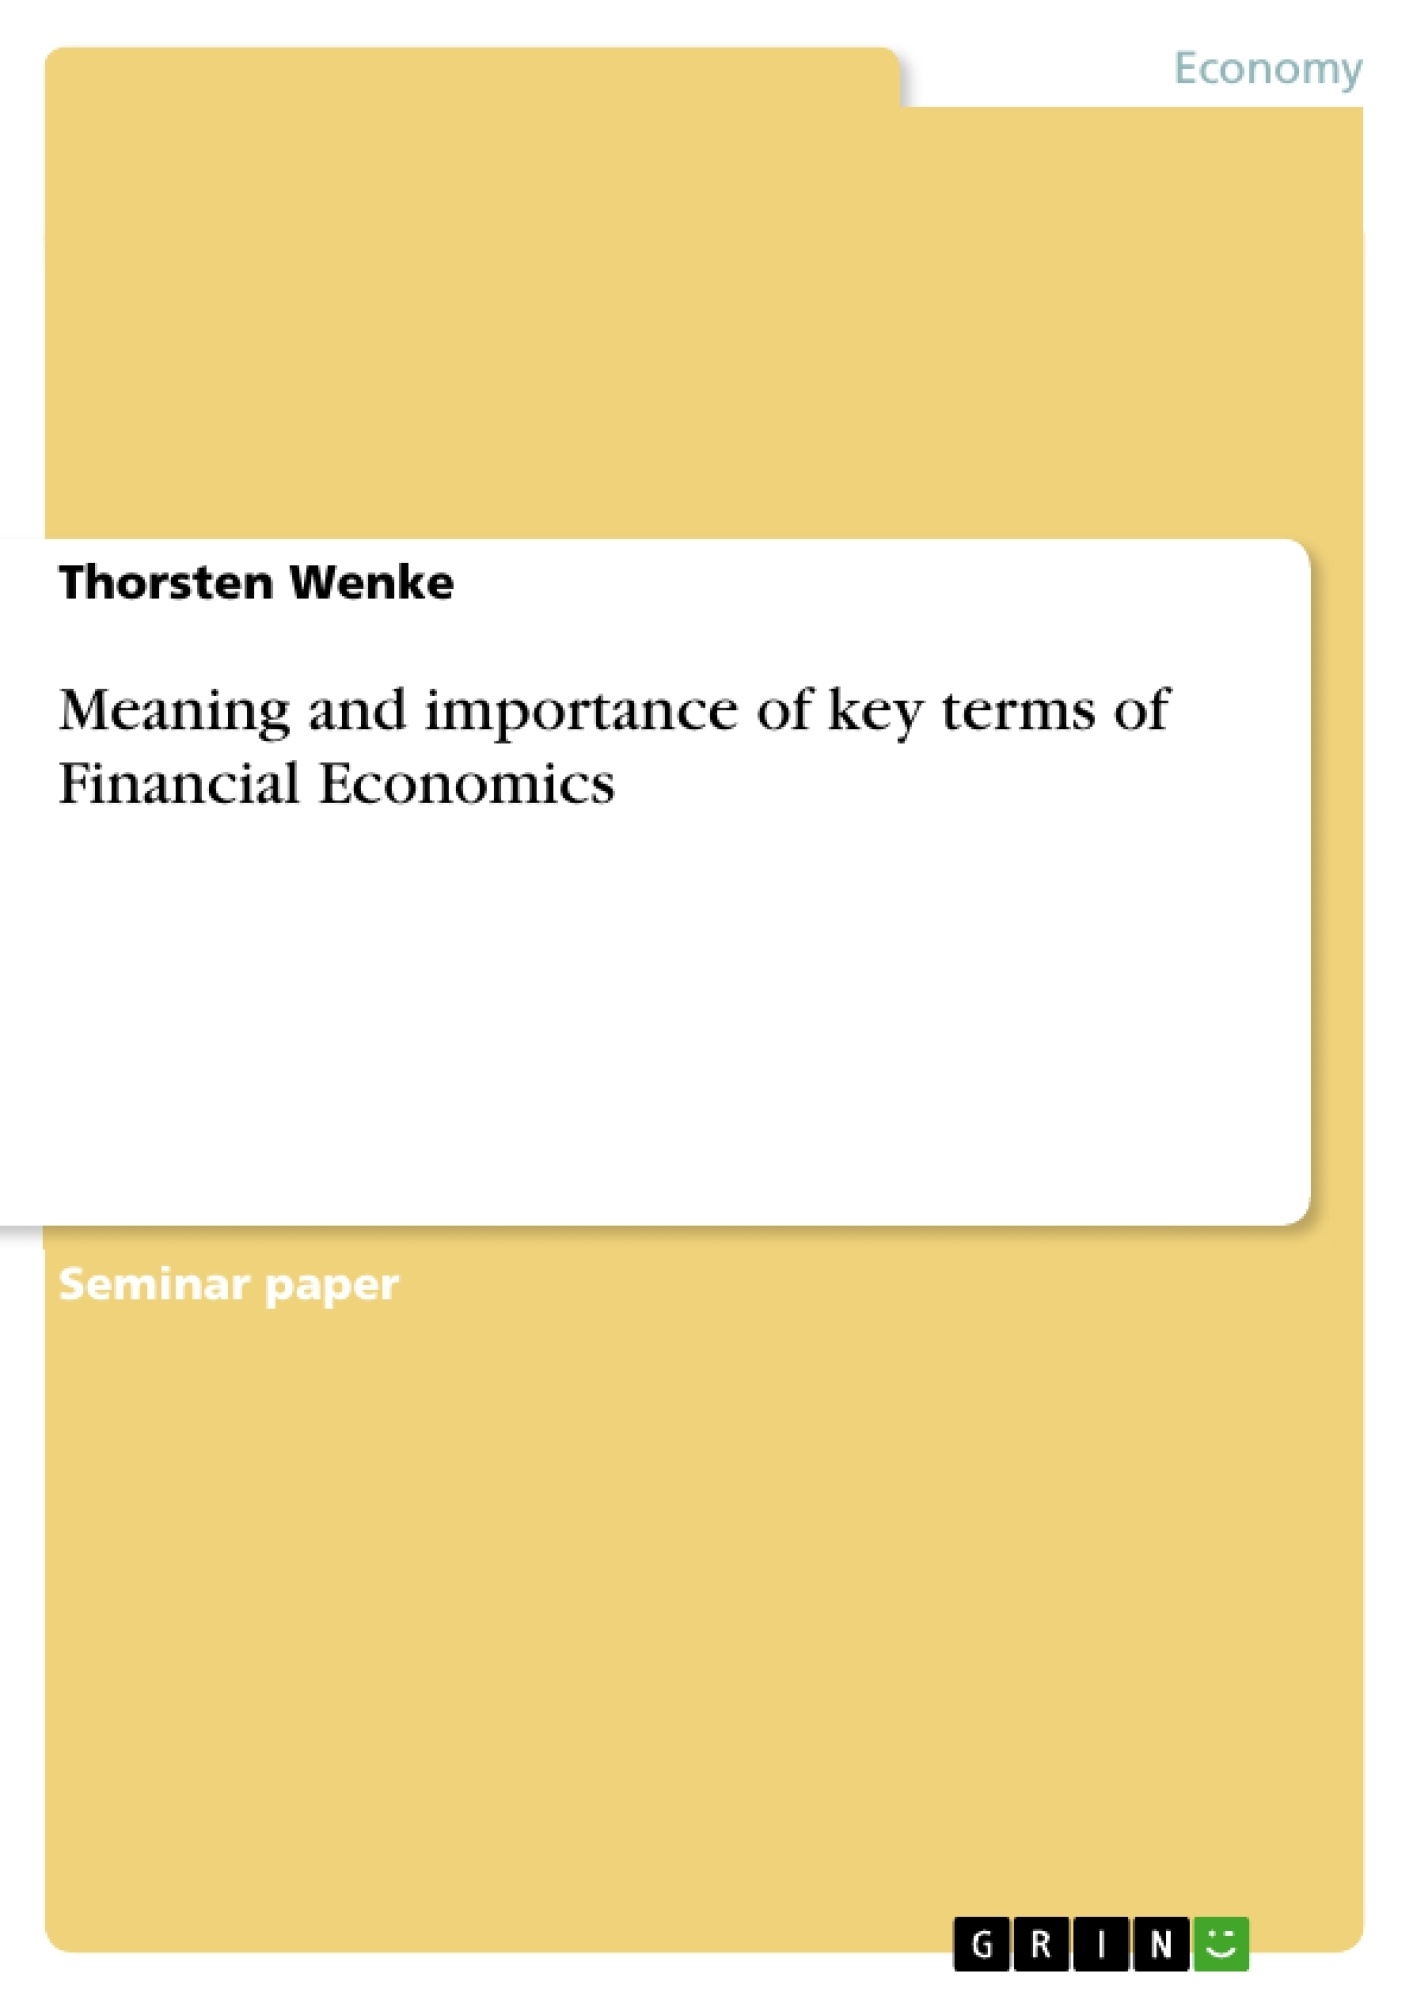 Title: Meaning and importance of key terms of Financial Economics